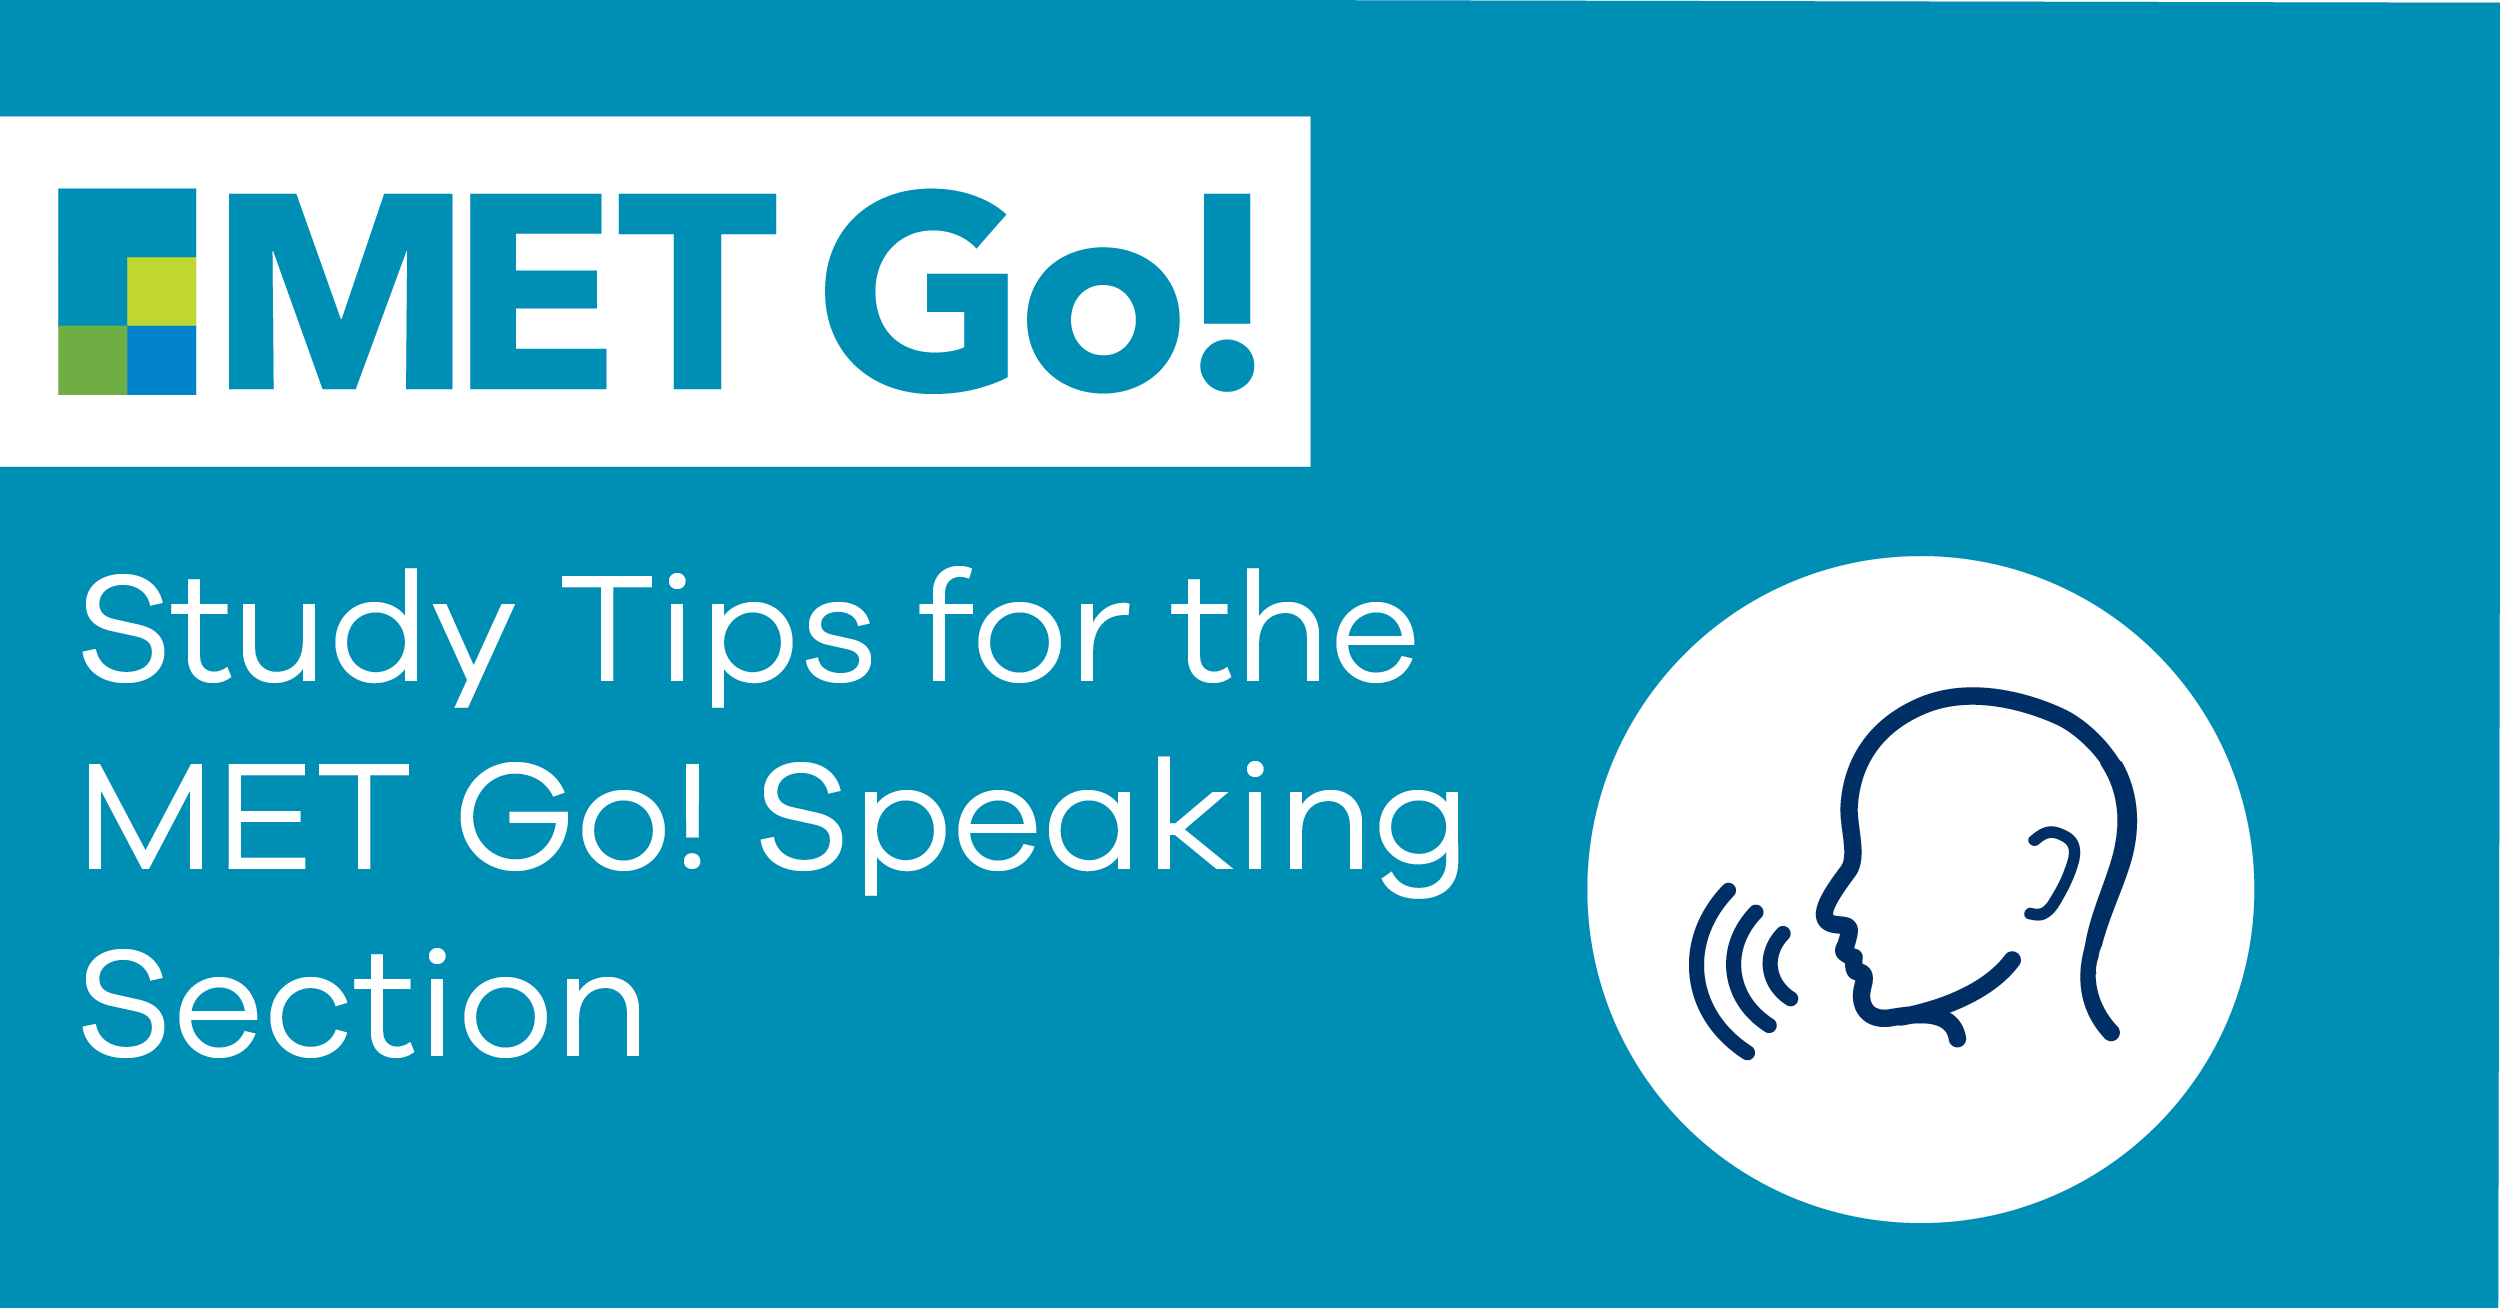 Study Tips for the MET Go! Speaking Section